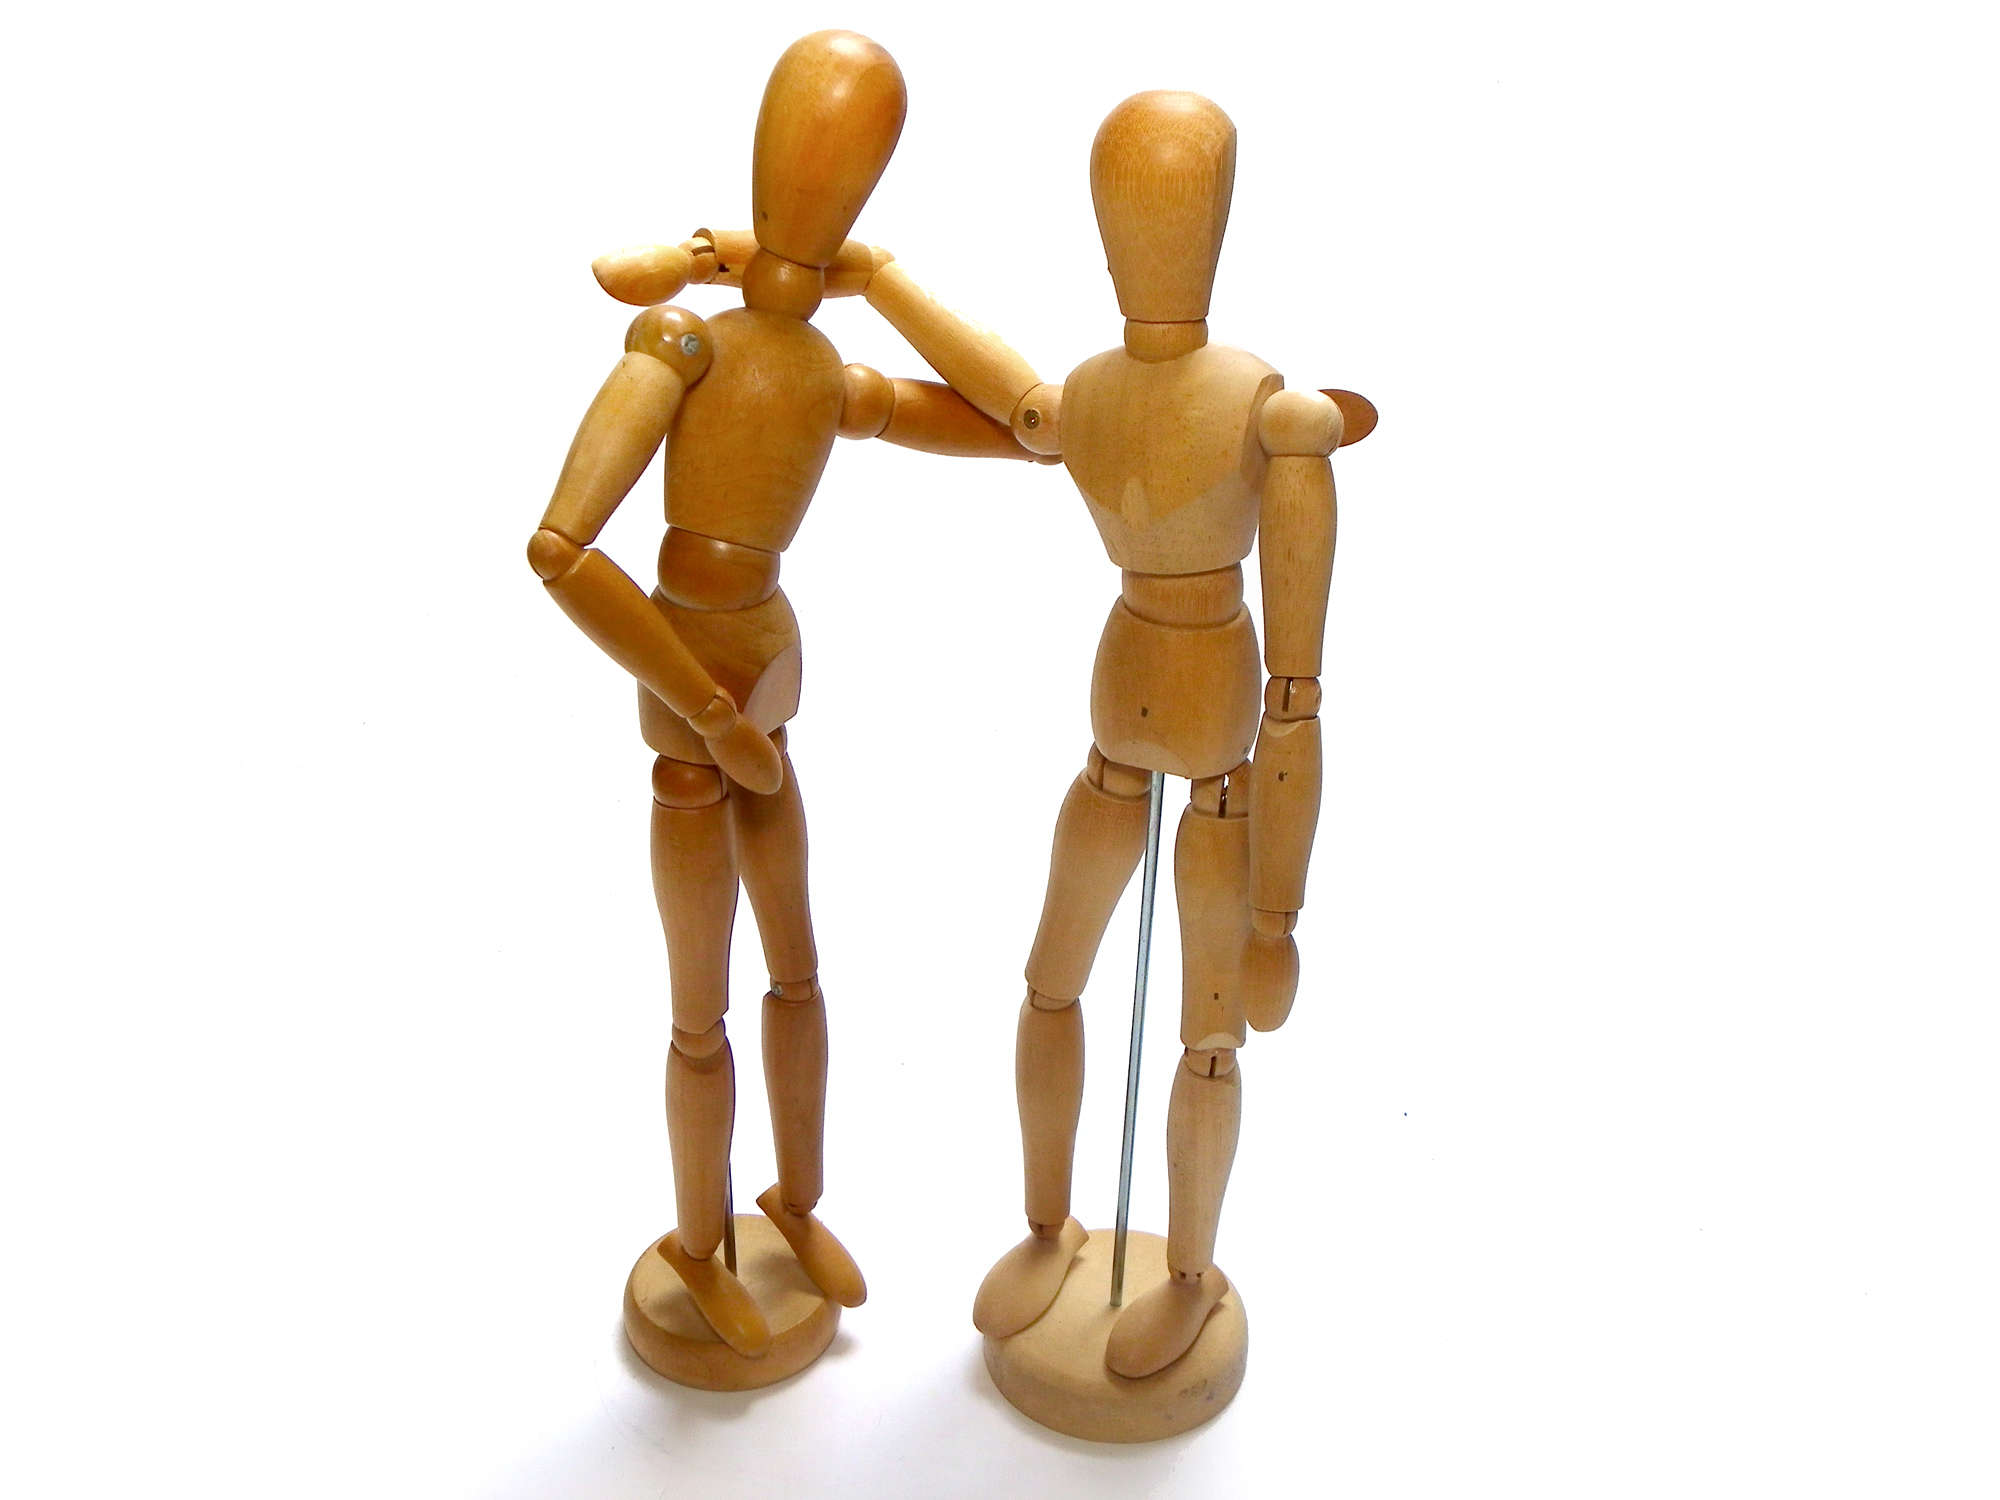 Two Wooden Figures